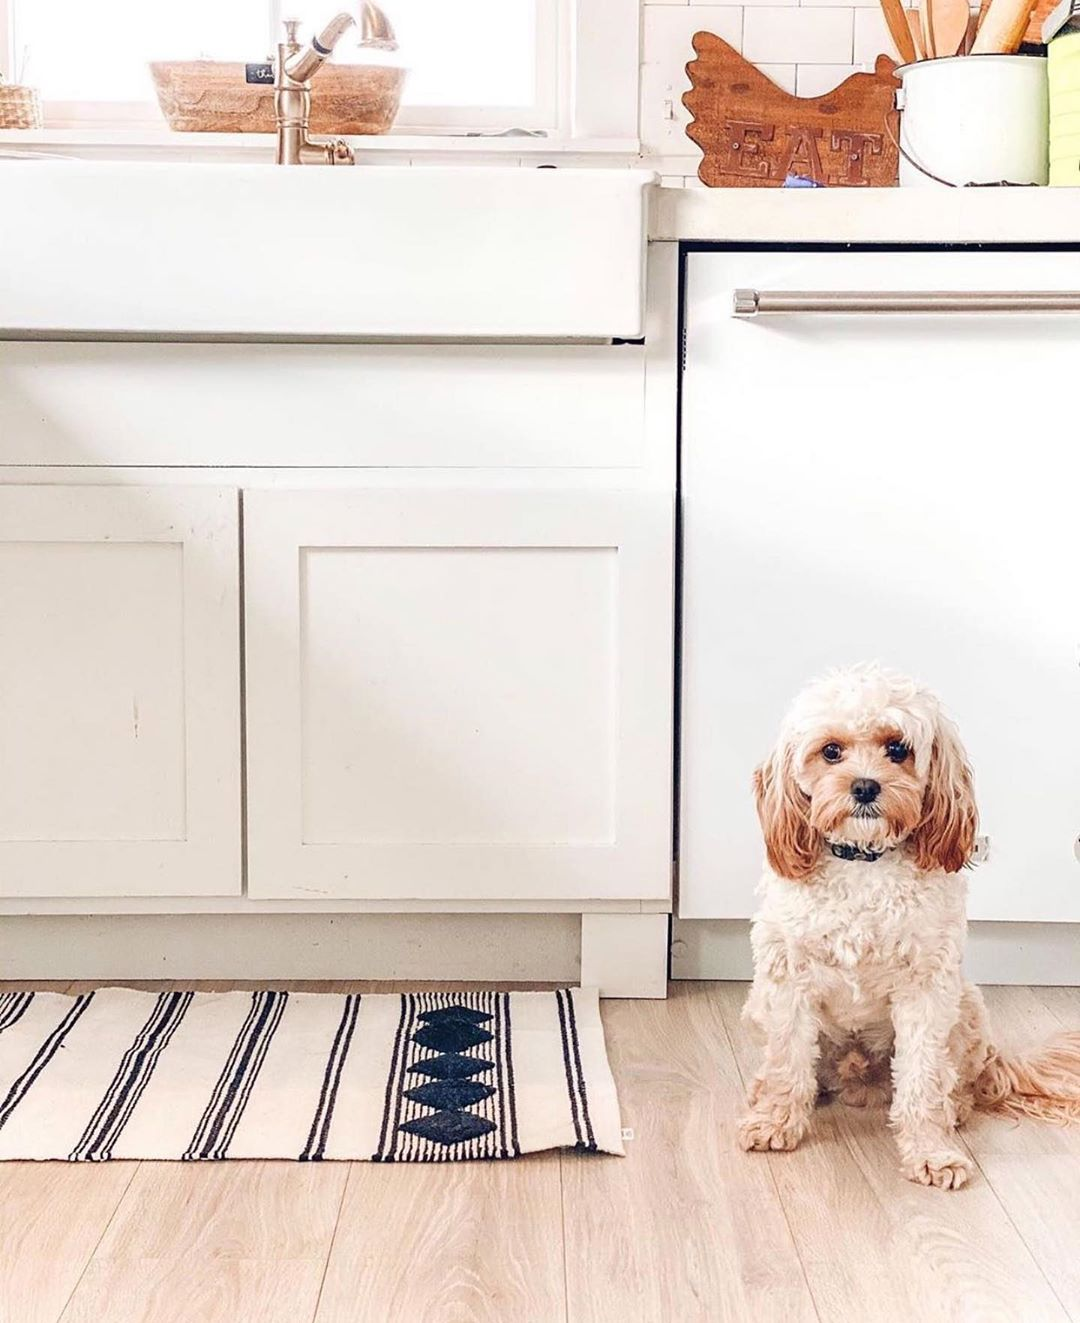 Get Items Like This In The Fabfitfun Spring Box In 2020 Pet Friendly Flooring Cool Rugs Pet Proof